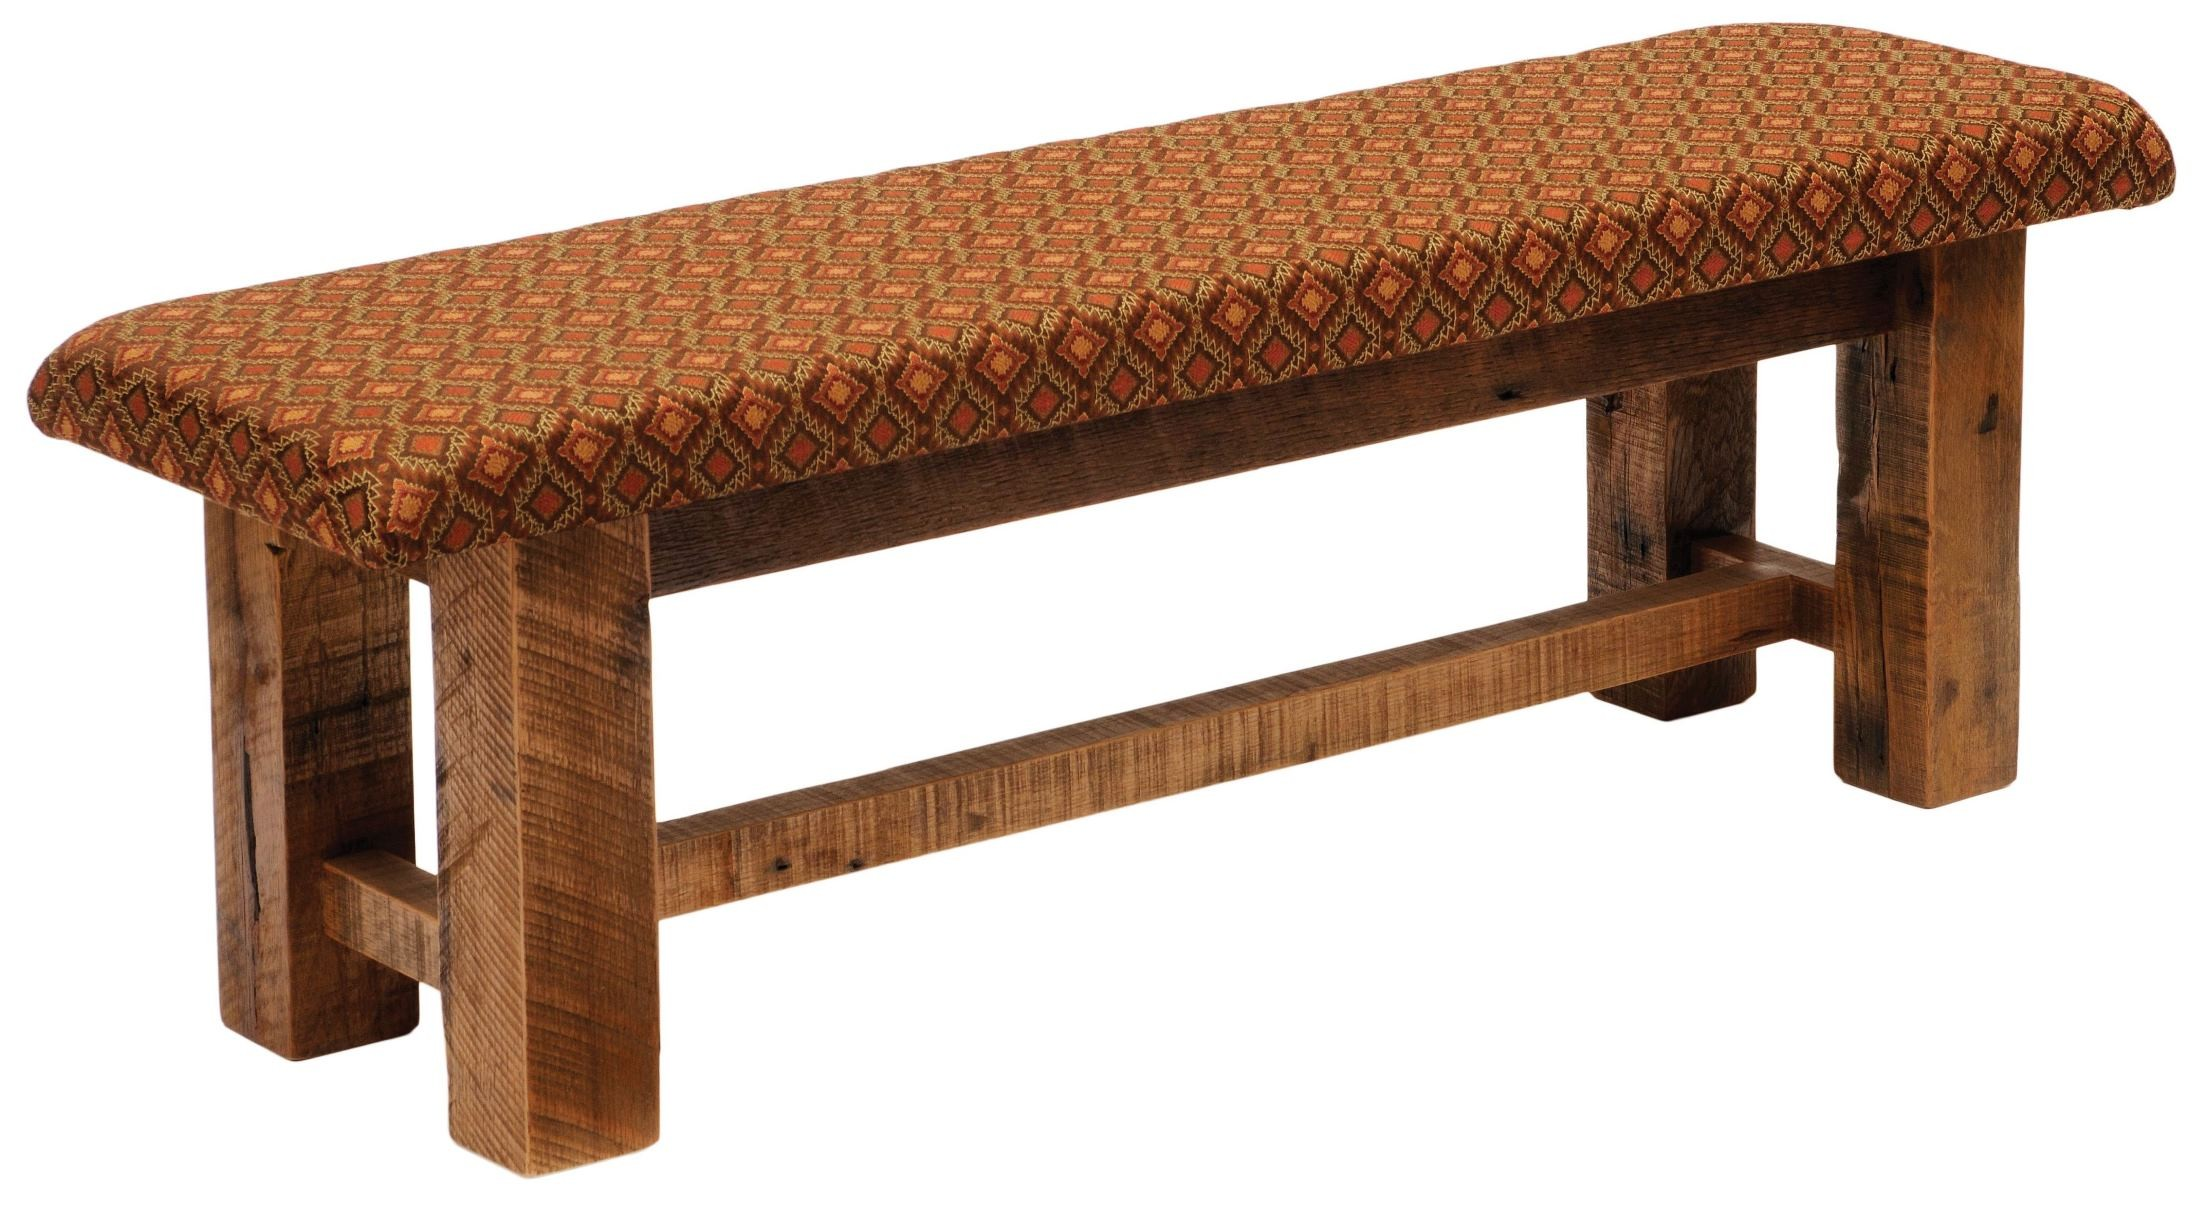 Barnwood Upholstered Seat 60 Standard Fabric Bench From Fireside Lodge B16050 Coleman Furniture